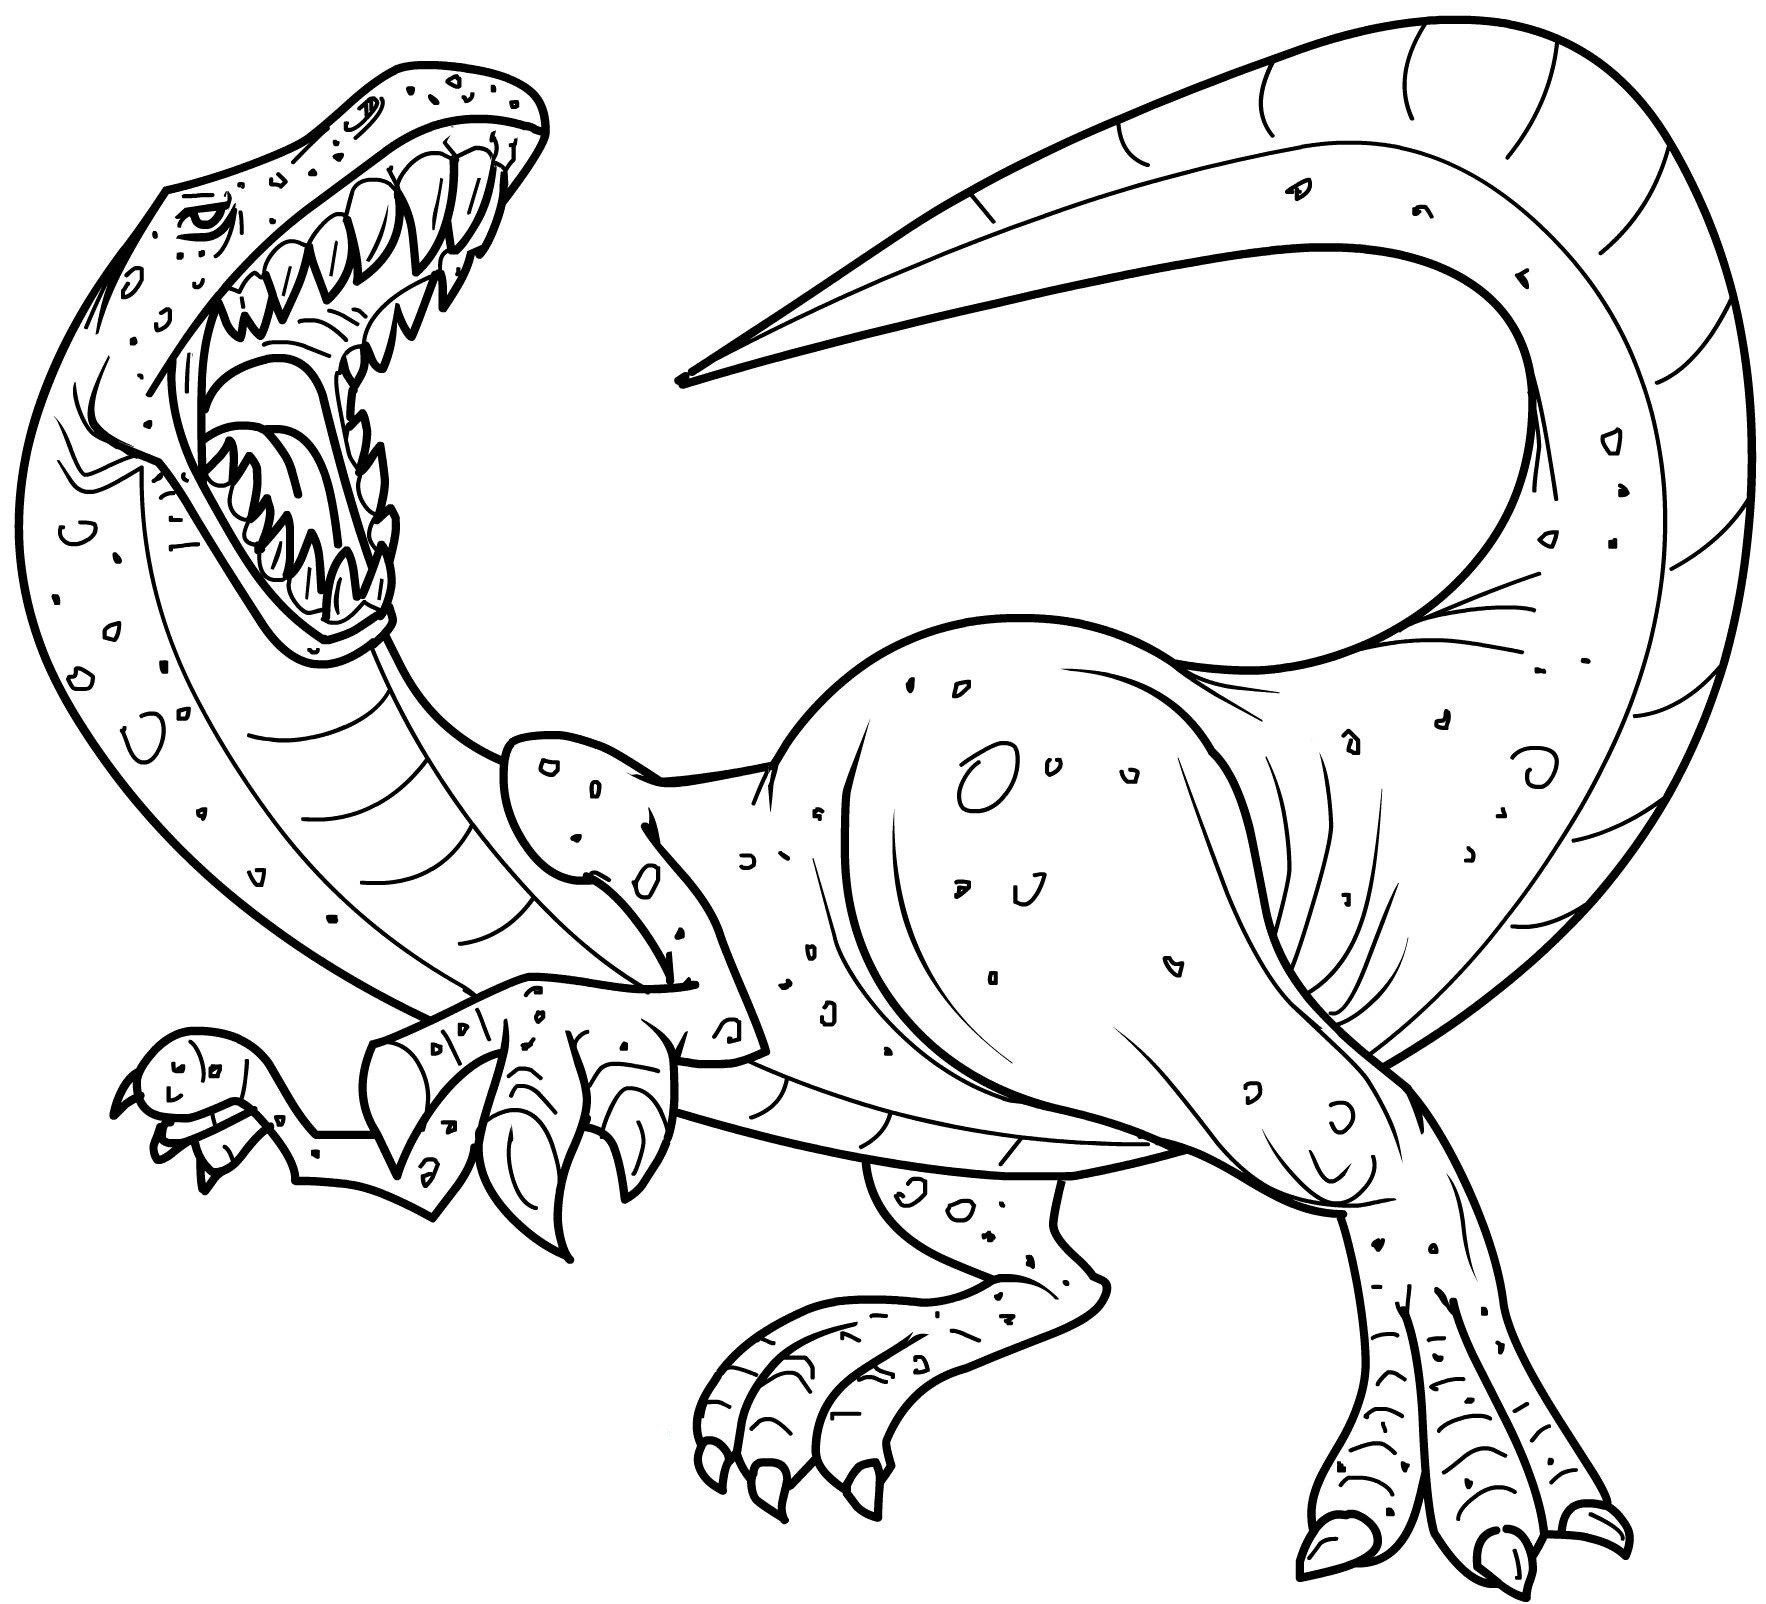 dinosaur to color dinosaur coloring pages 2018 dr odd to color dinosaur